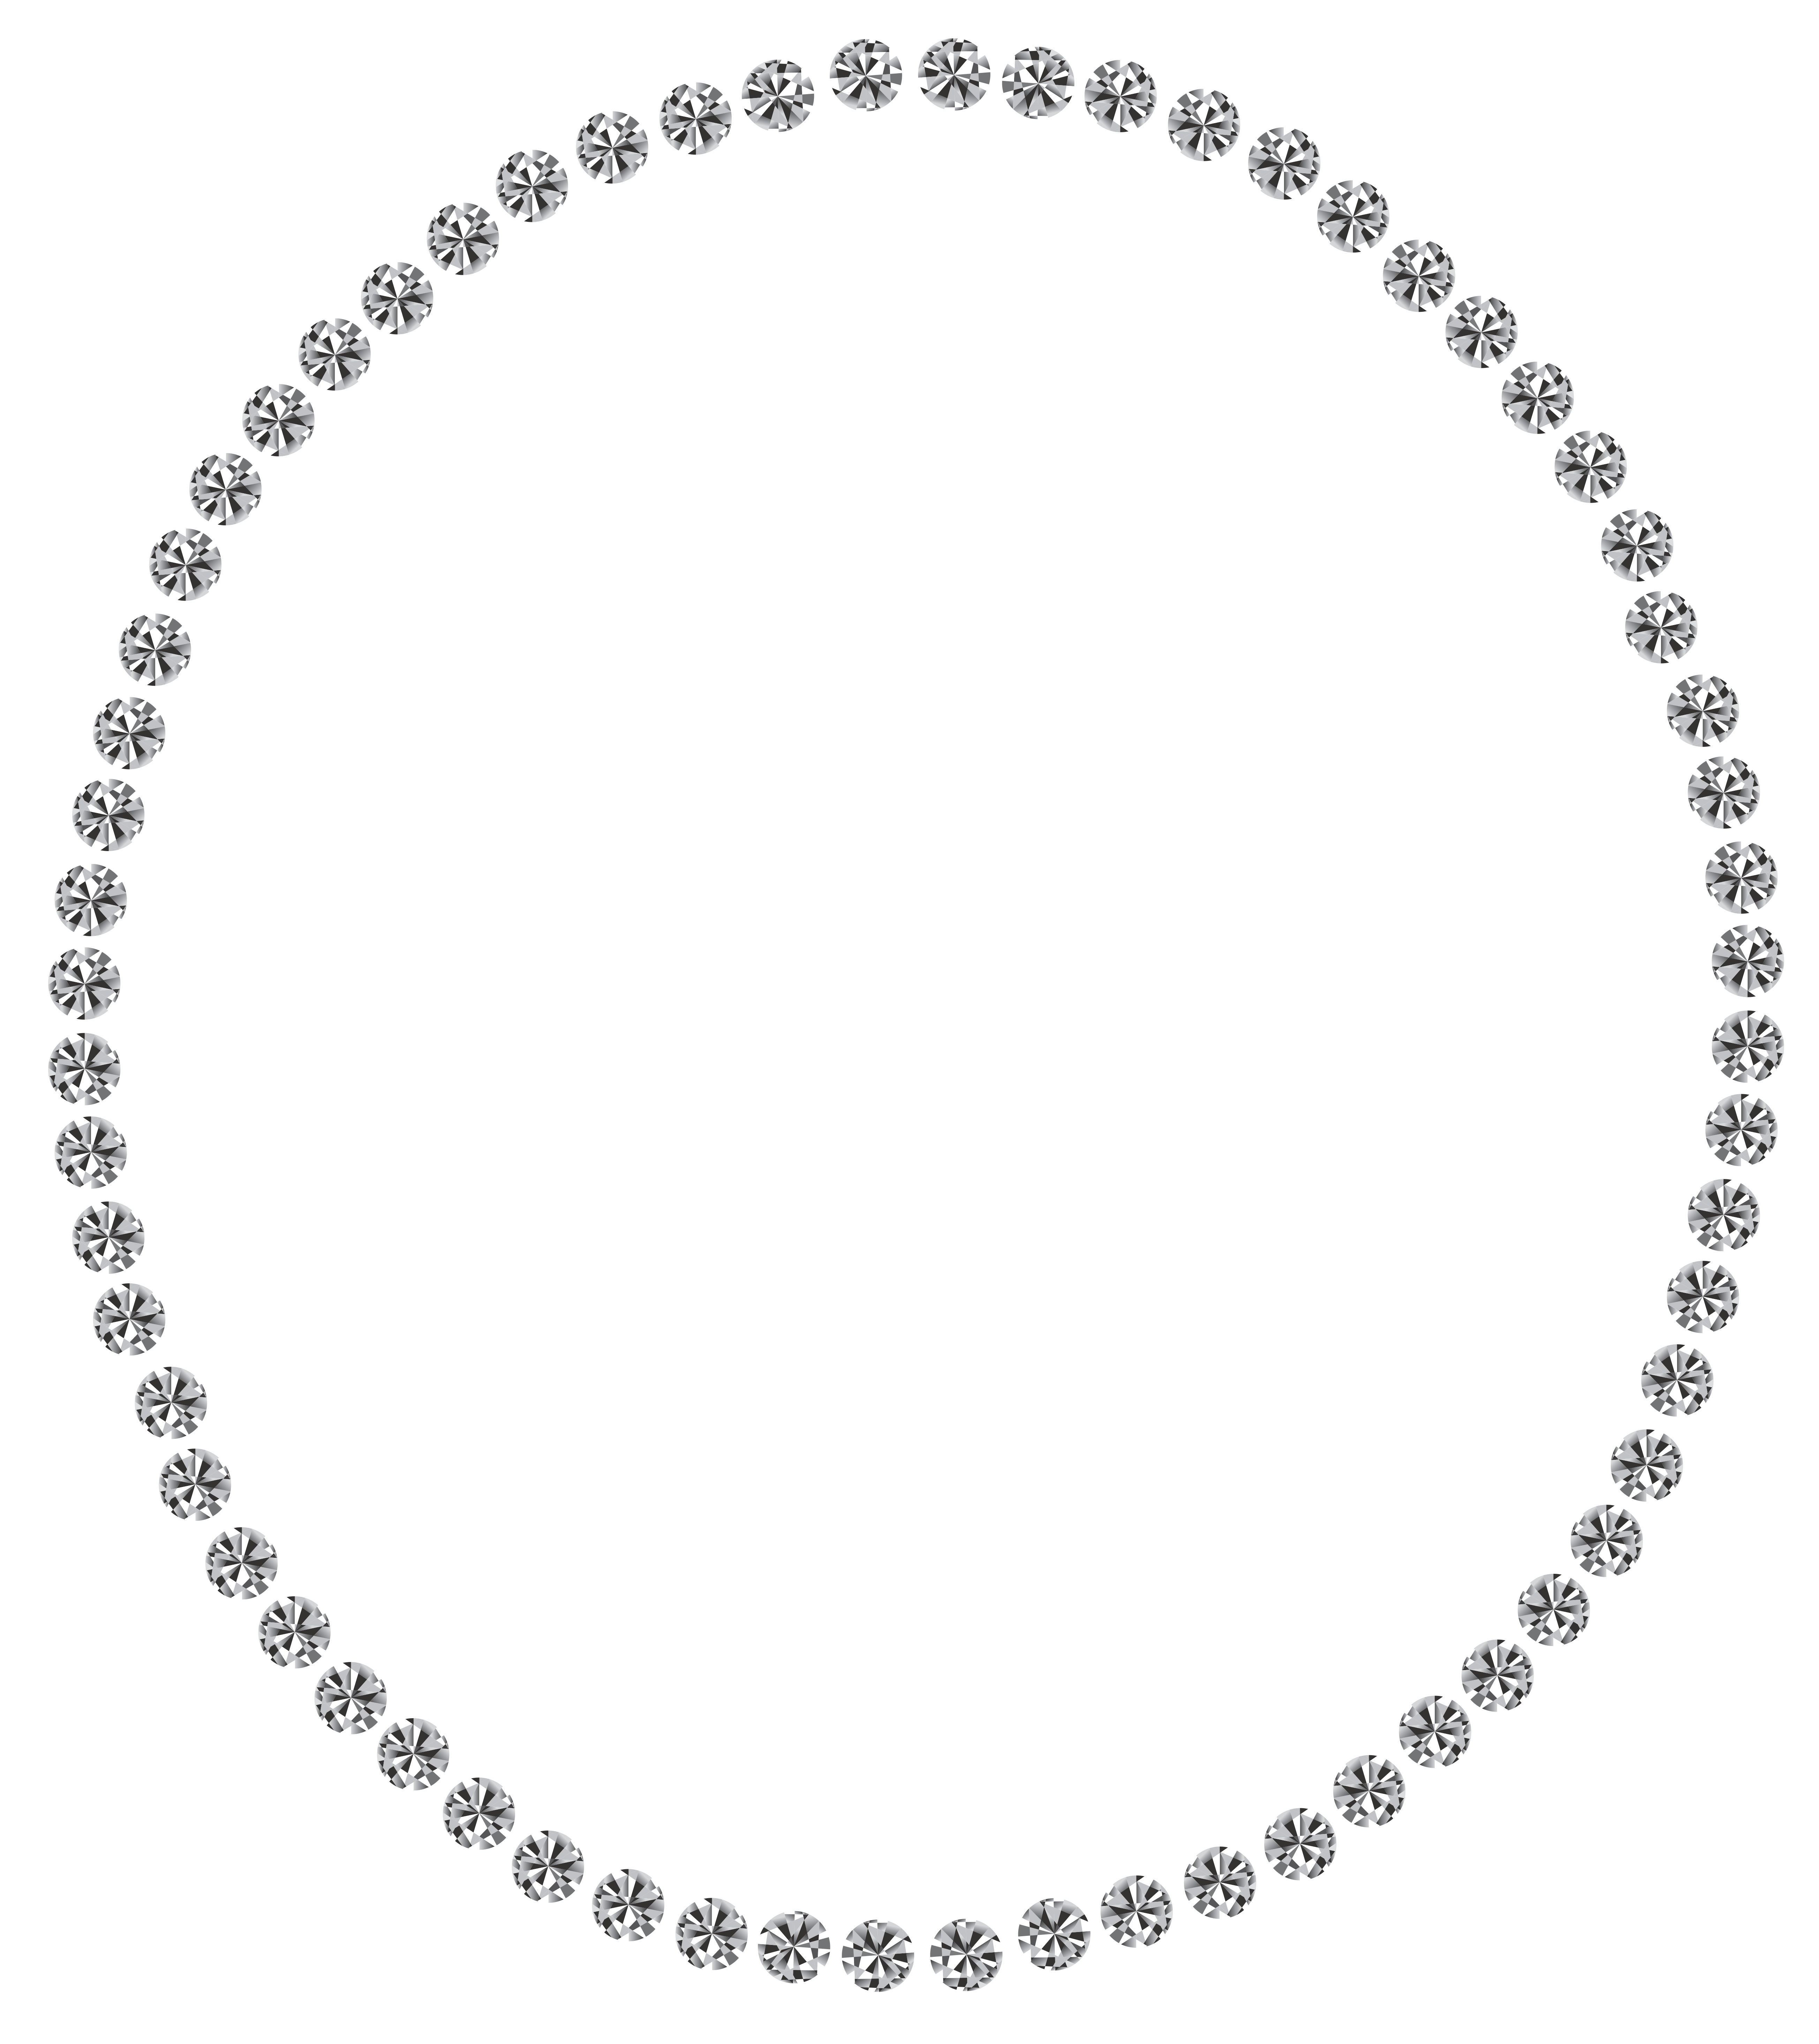 Oval decoration png image. Diamonds clipart circle